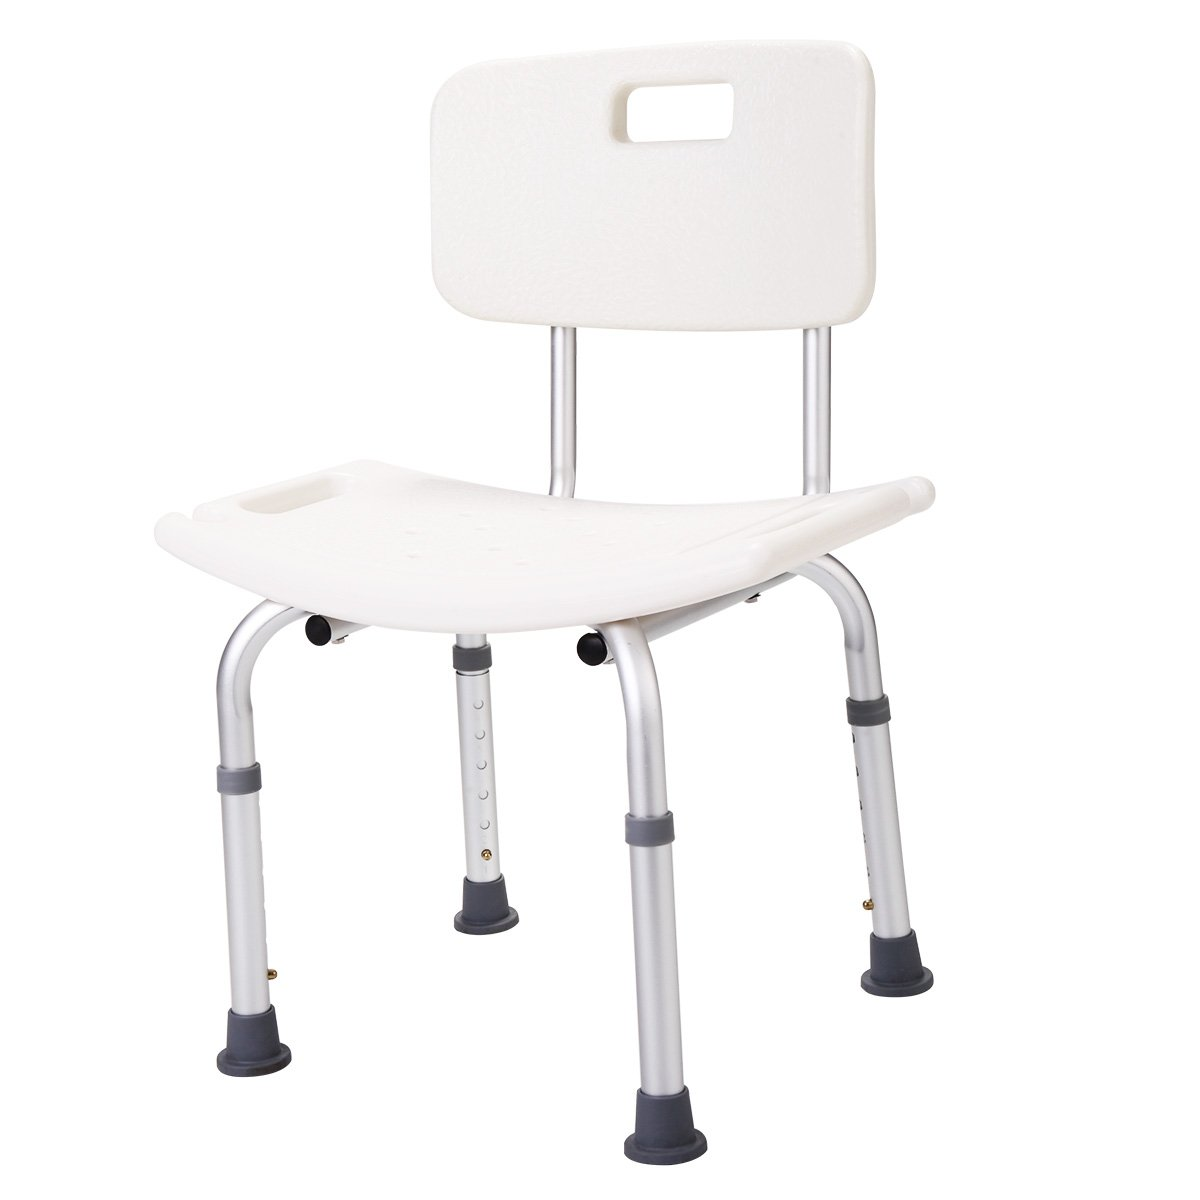 JAXPETY Medical Tool-Free Spa Bathtub Adjustable Shower Chair Seat Bench with Removable Back (Adjustable Shower Chair)